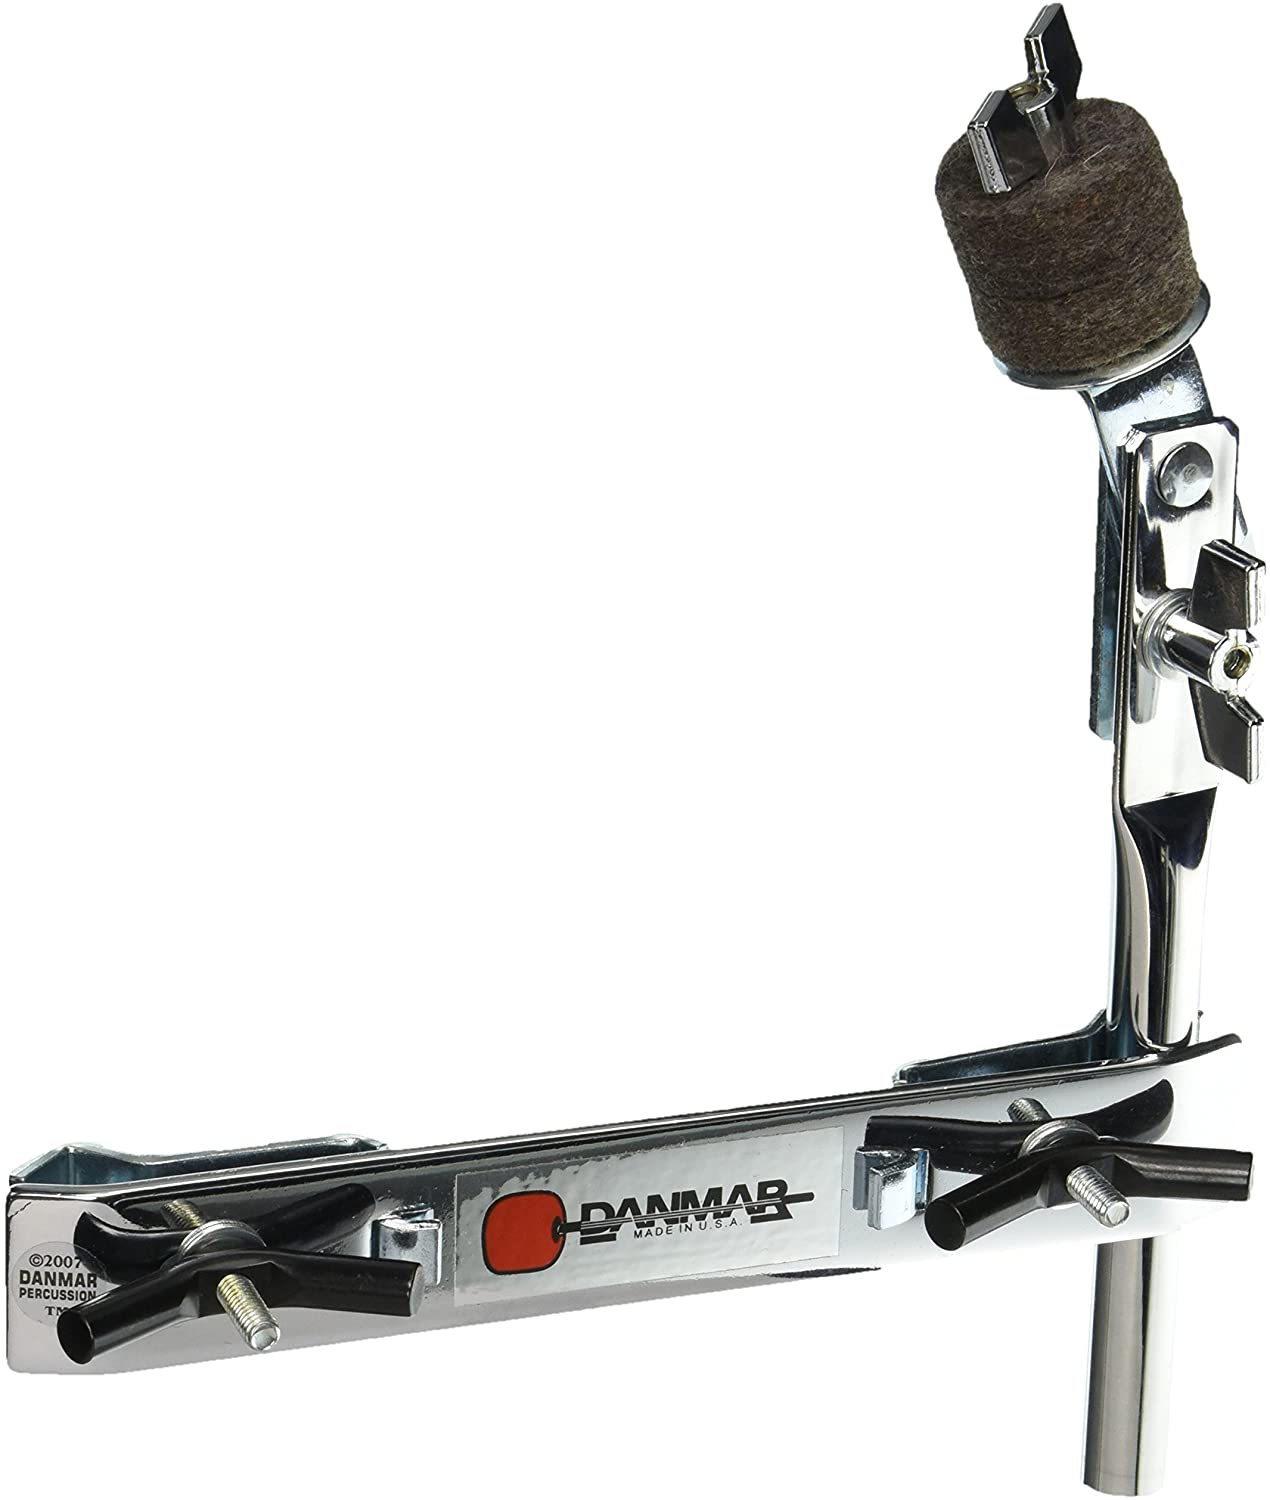 Danmar DP309 Cymbal Holder with Full Tilter